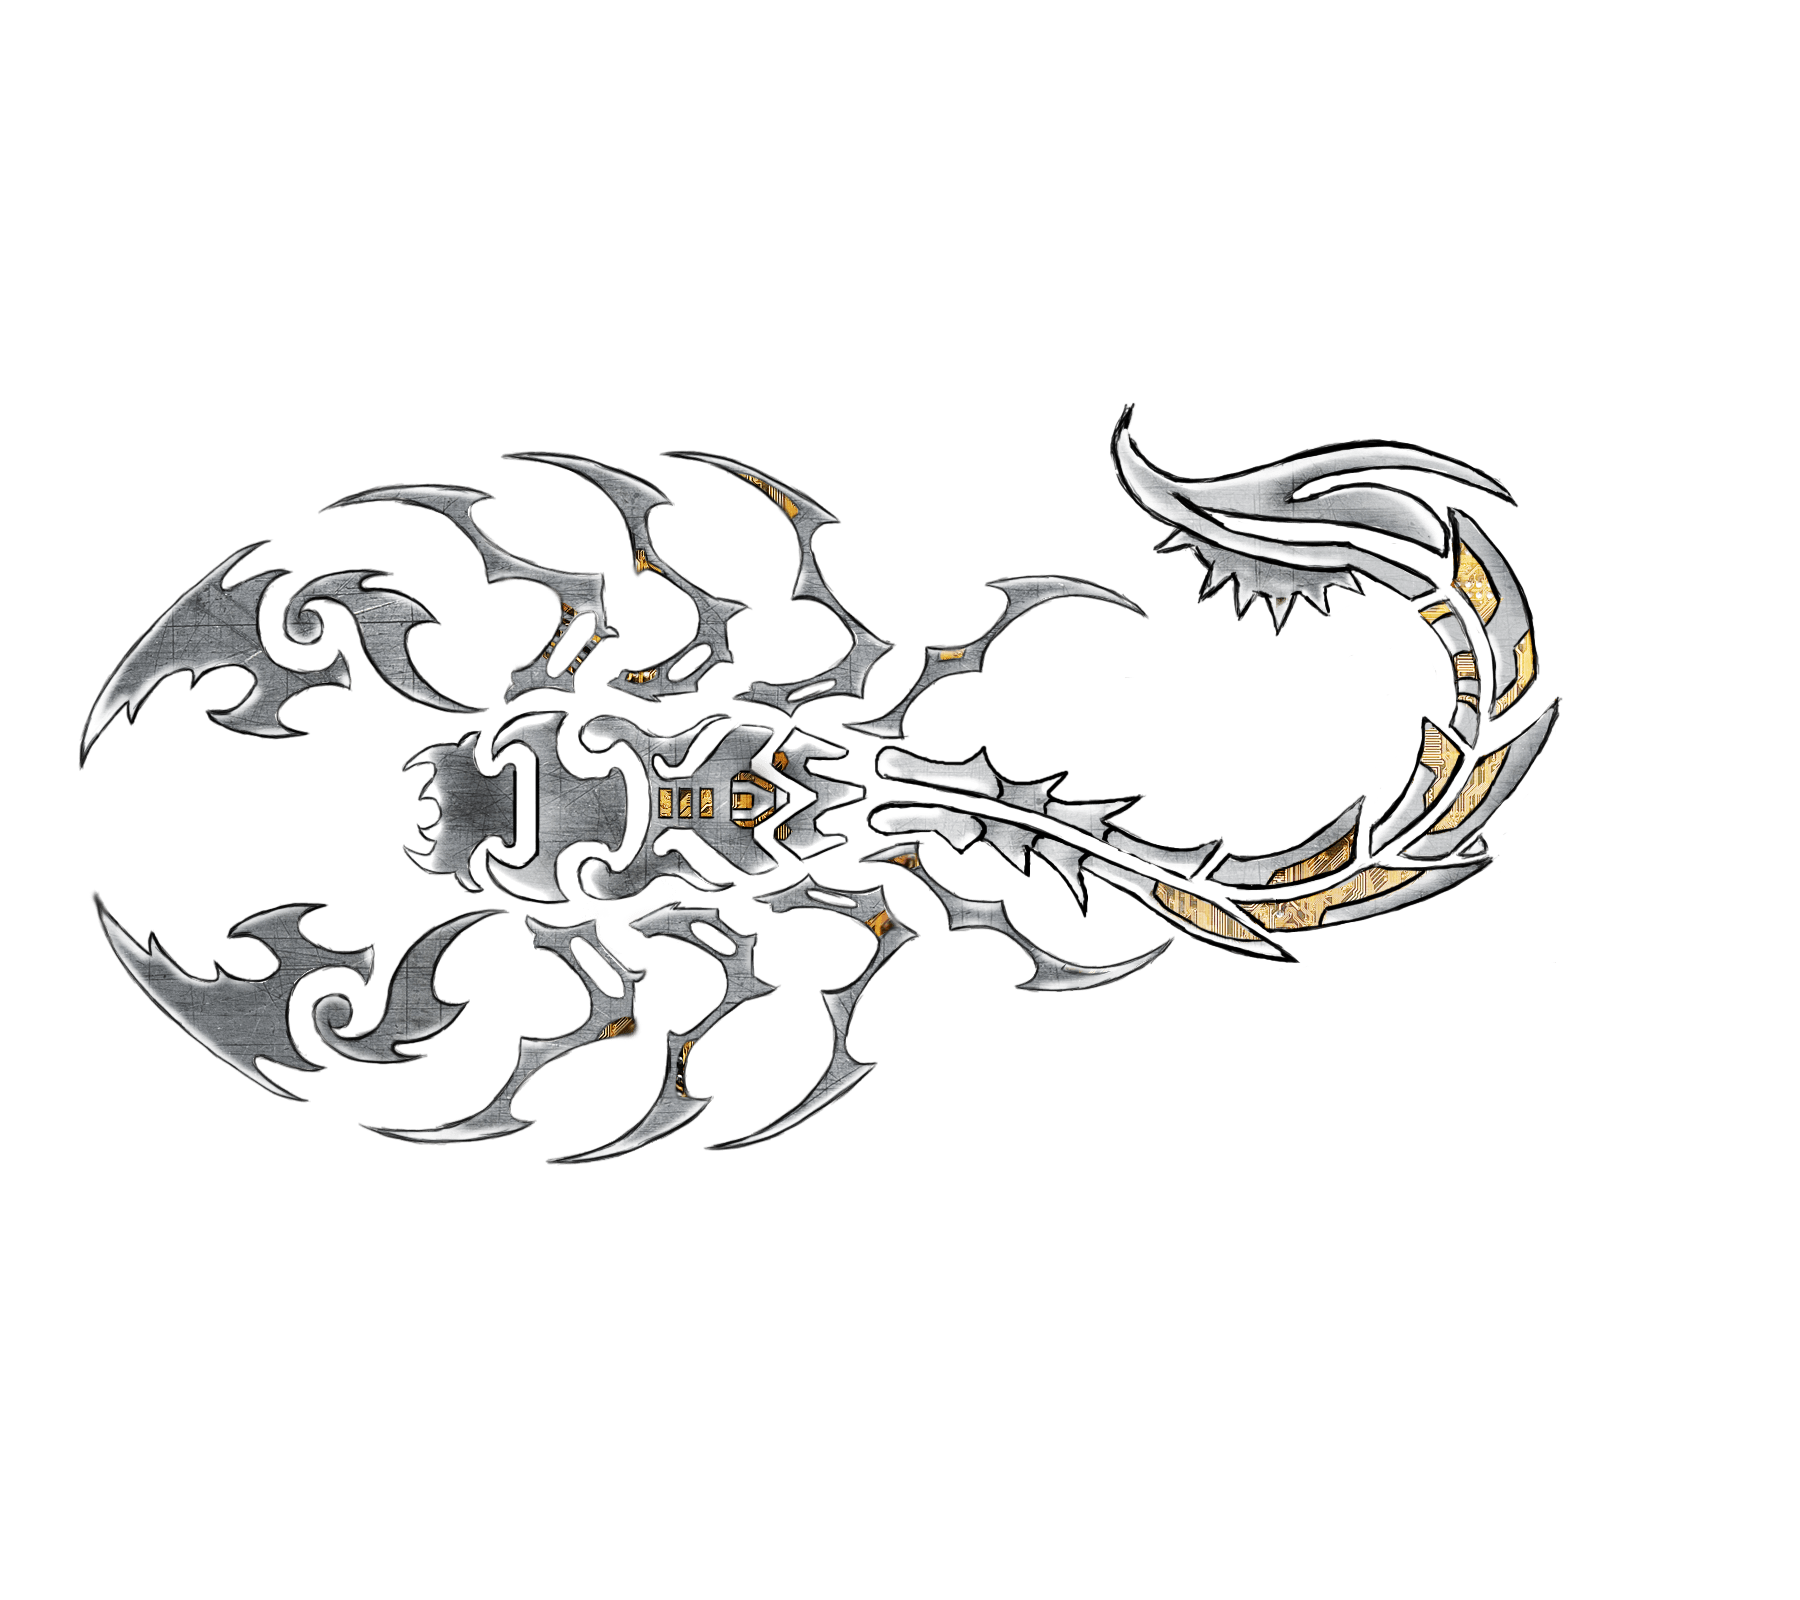 Cool Wallpapers Scorpion Tribal Tattoo Backgrounds, Wallpapers, HD